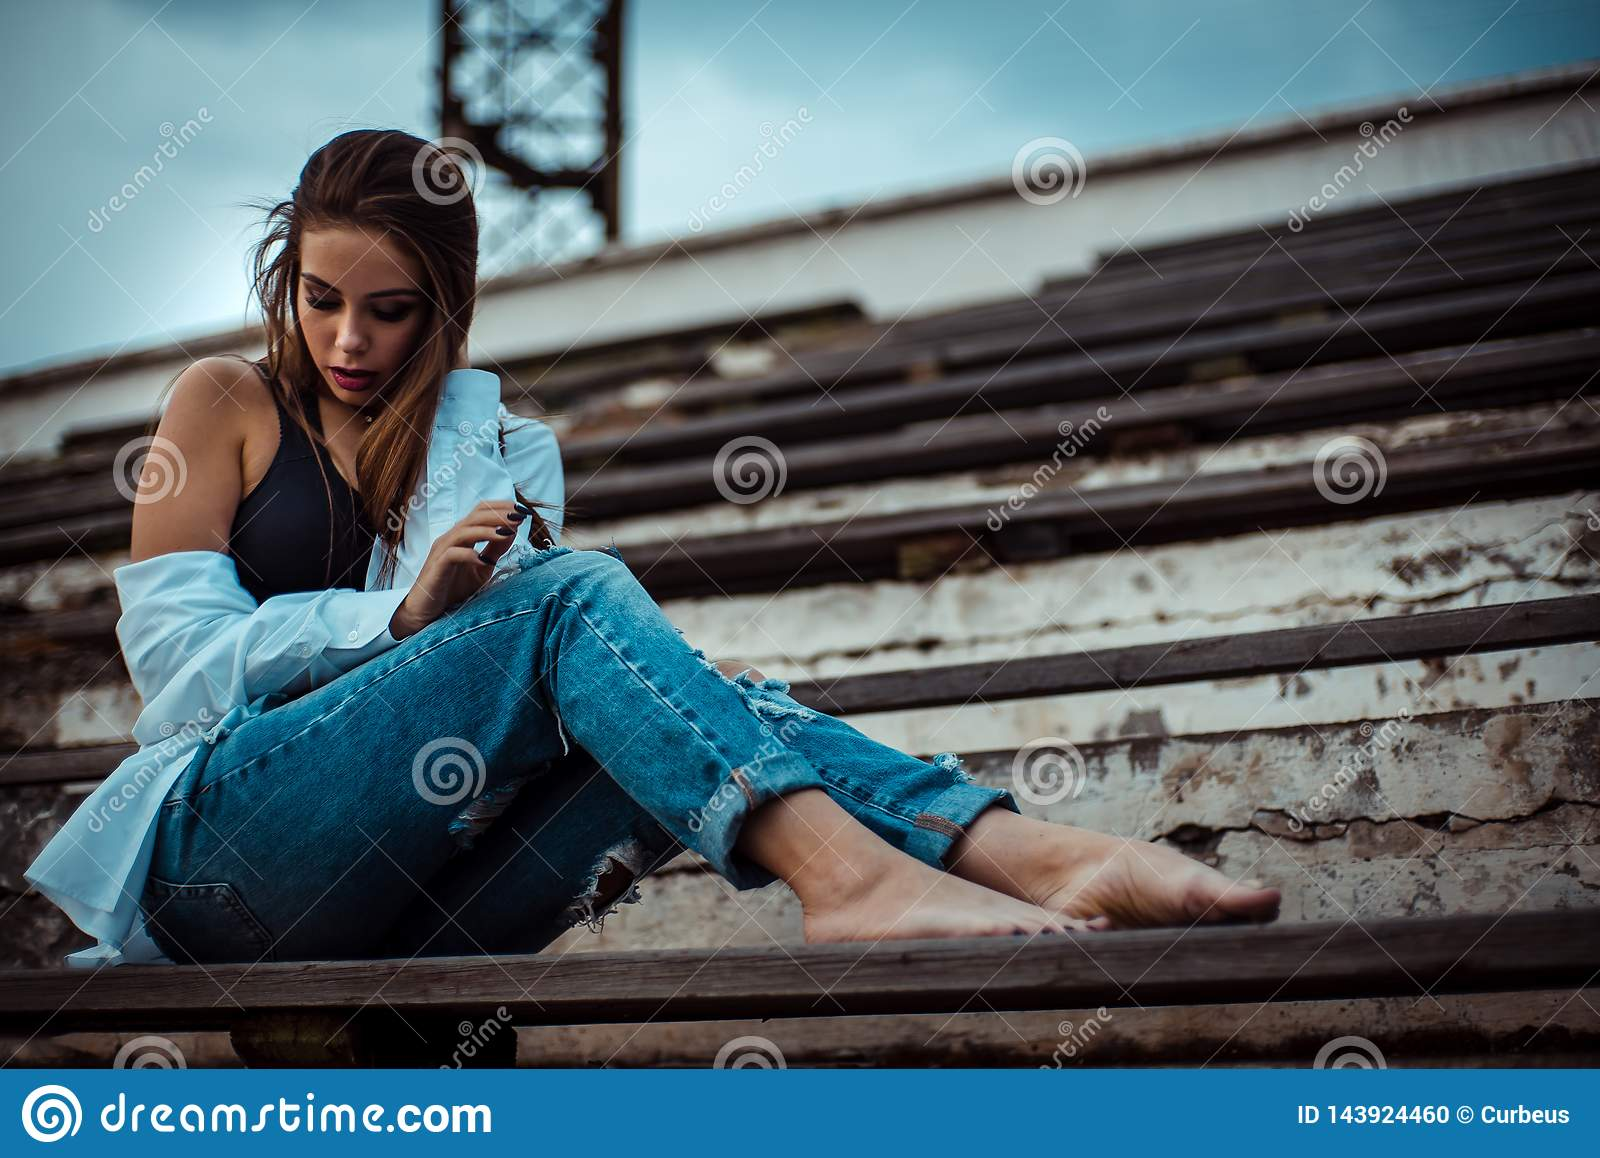 Attractive woman sitting with bare feet in the stadium. She`s wearing a shirt and jeans